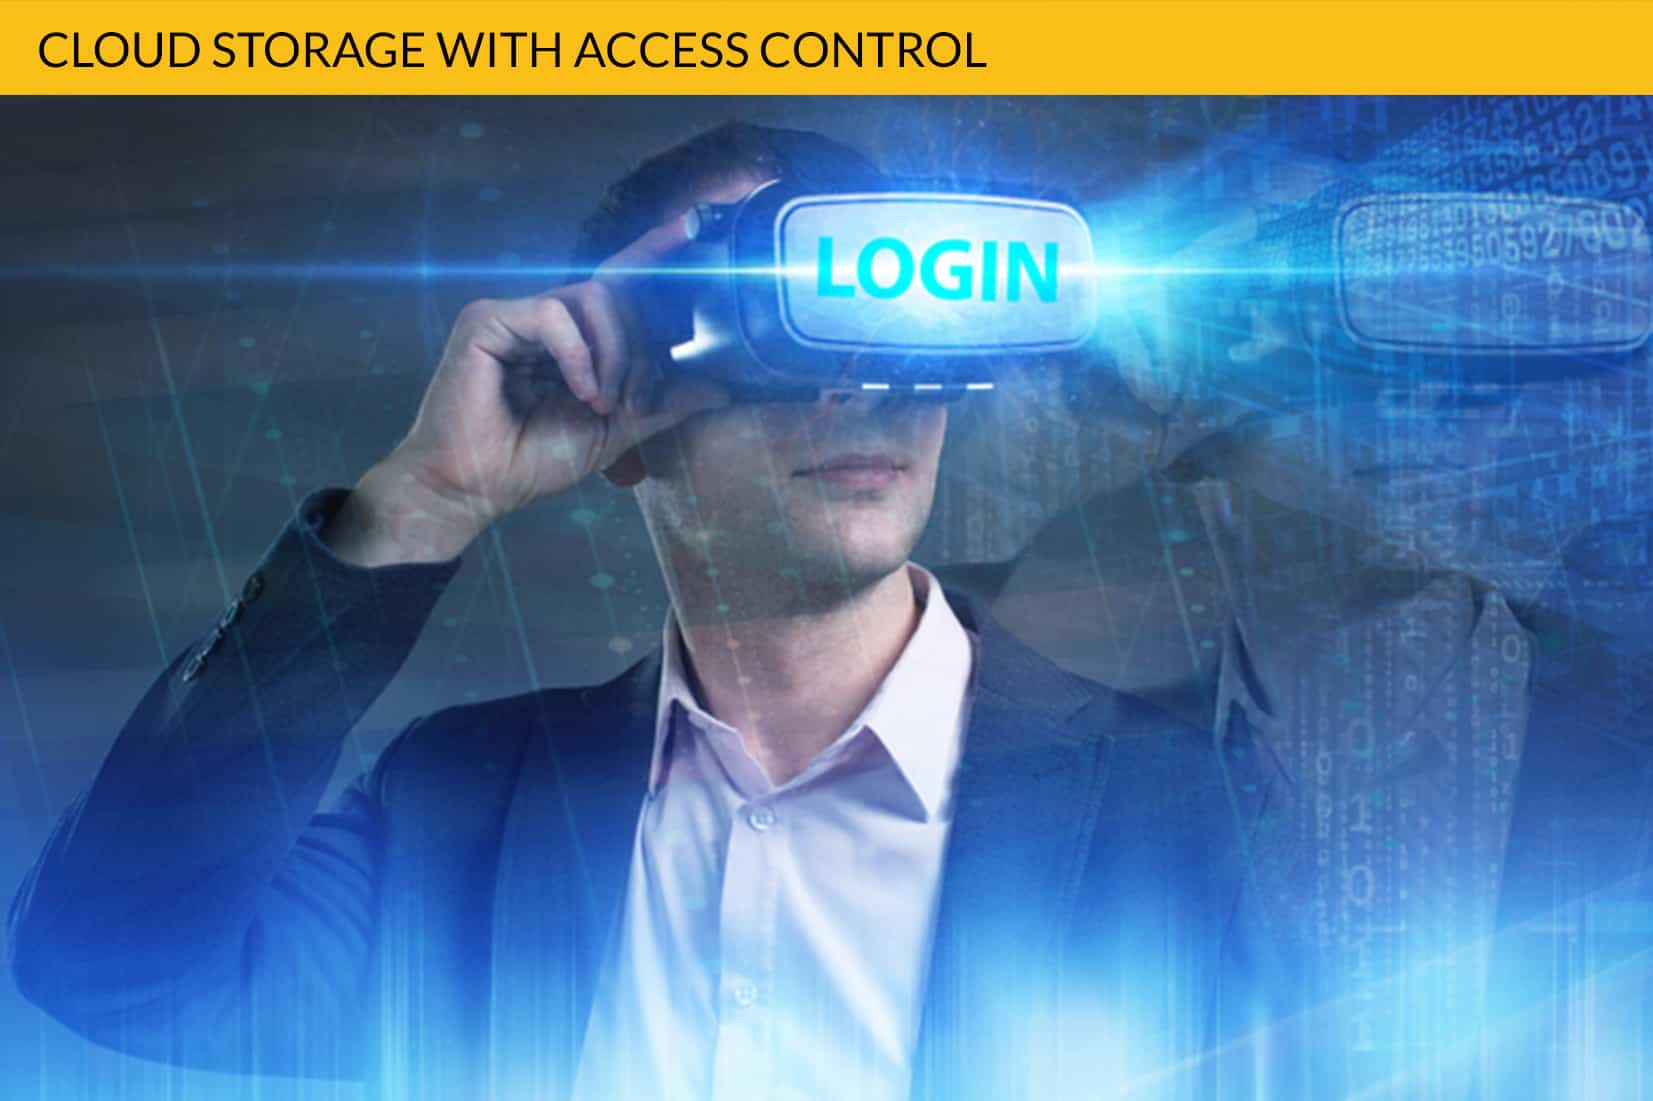 Cloud Storage with Access Control